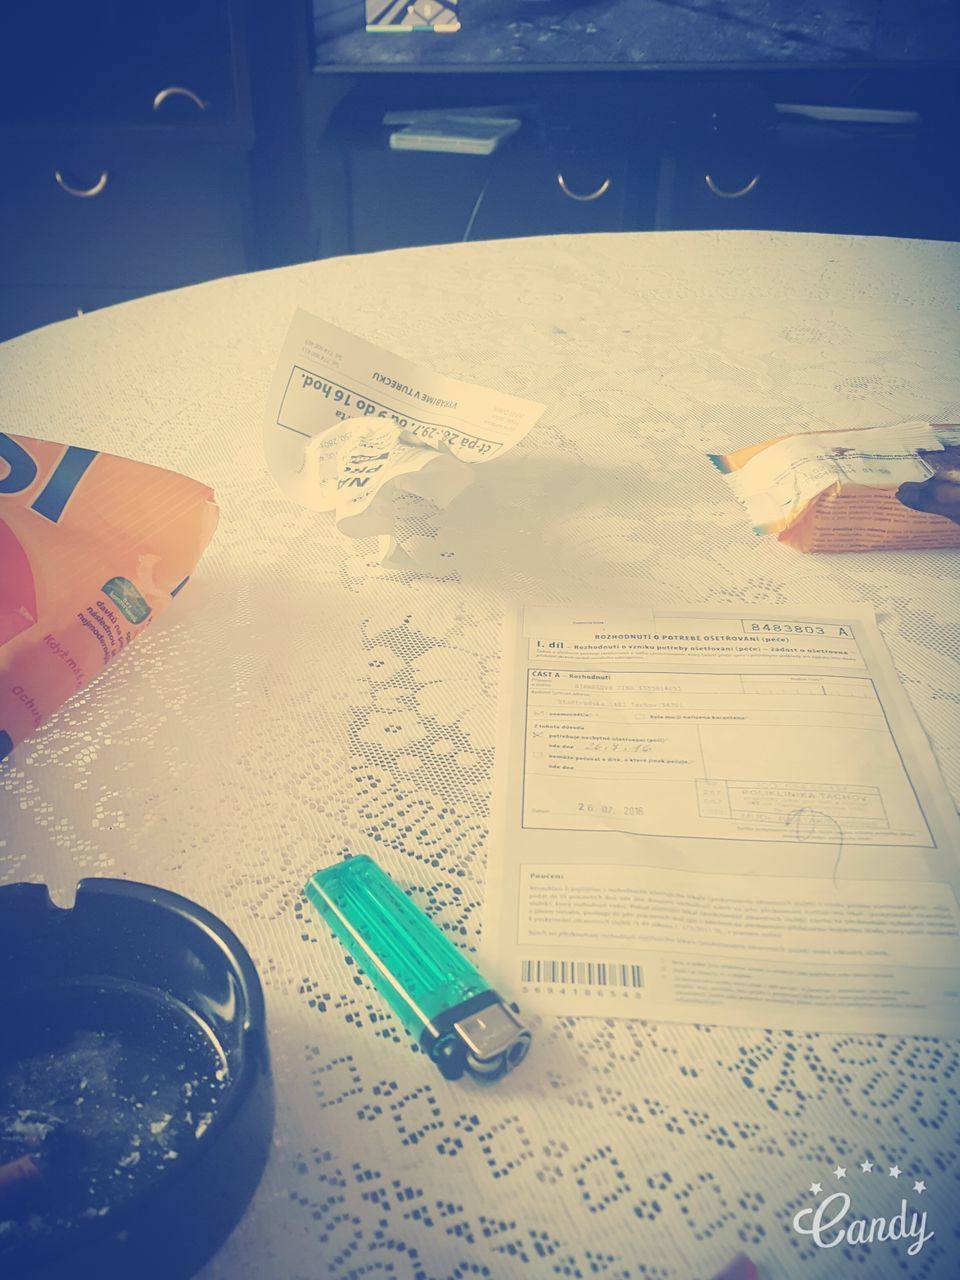 indoors, paper, table, finance, no people, currency, paper currency, close-up, day